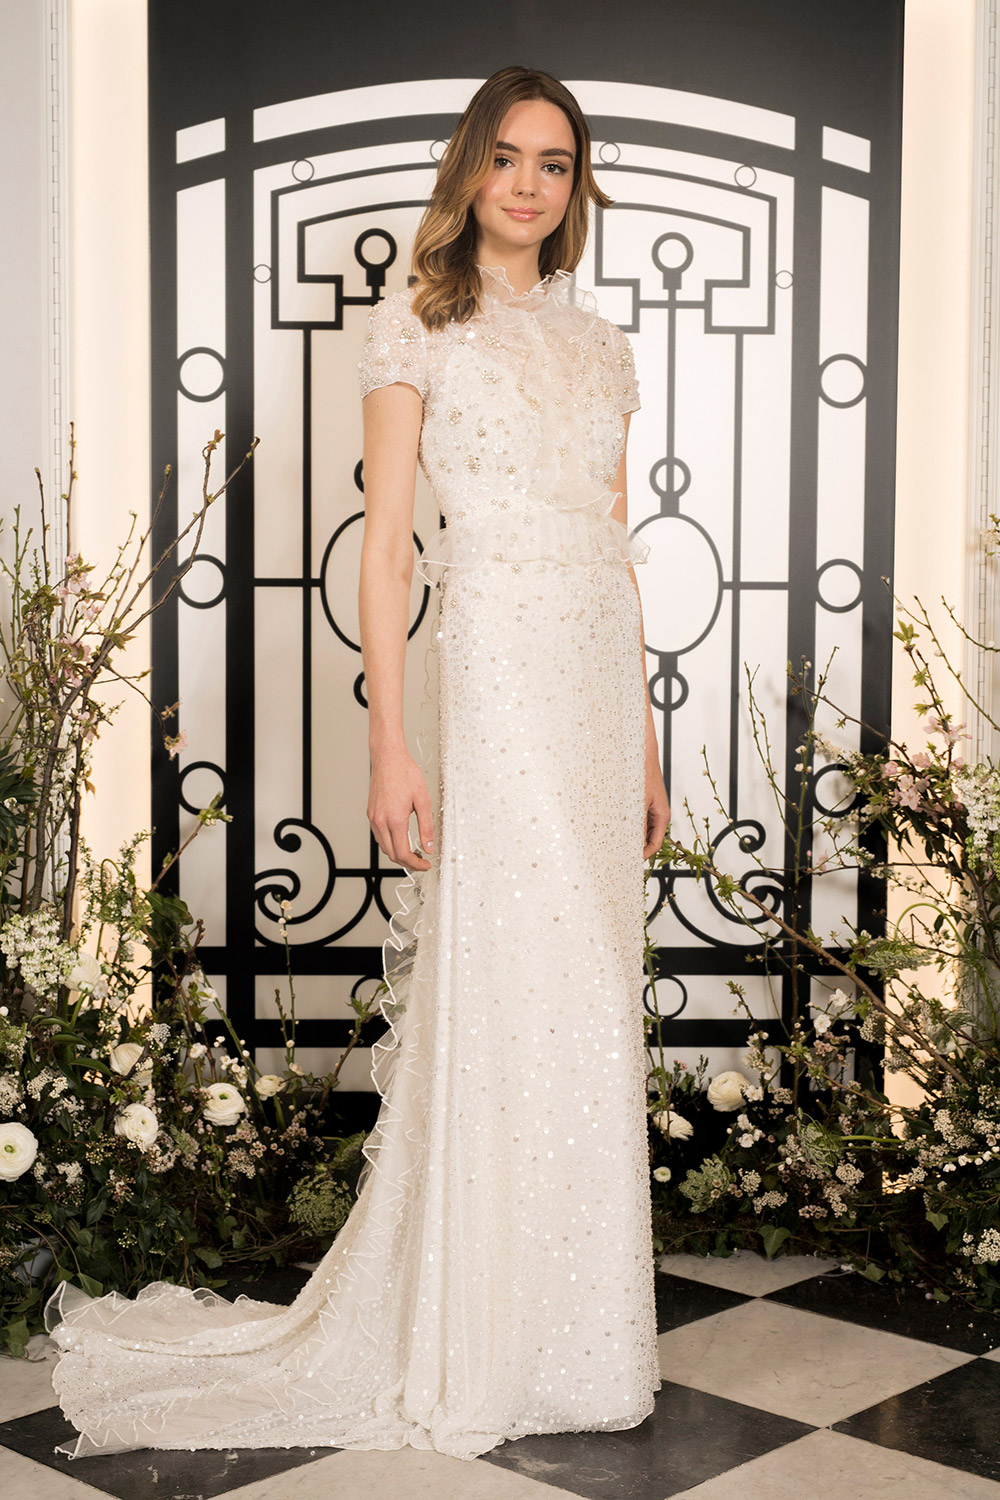 Nolita - Jenny Packham 2020 Bridal Collection. www.theweddingnotebook.com